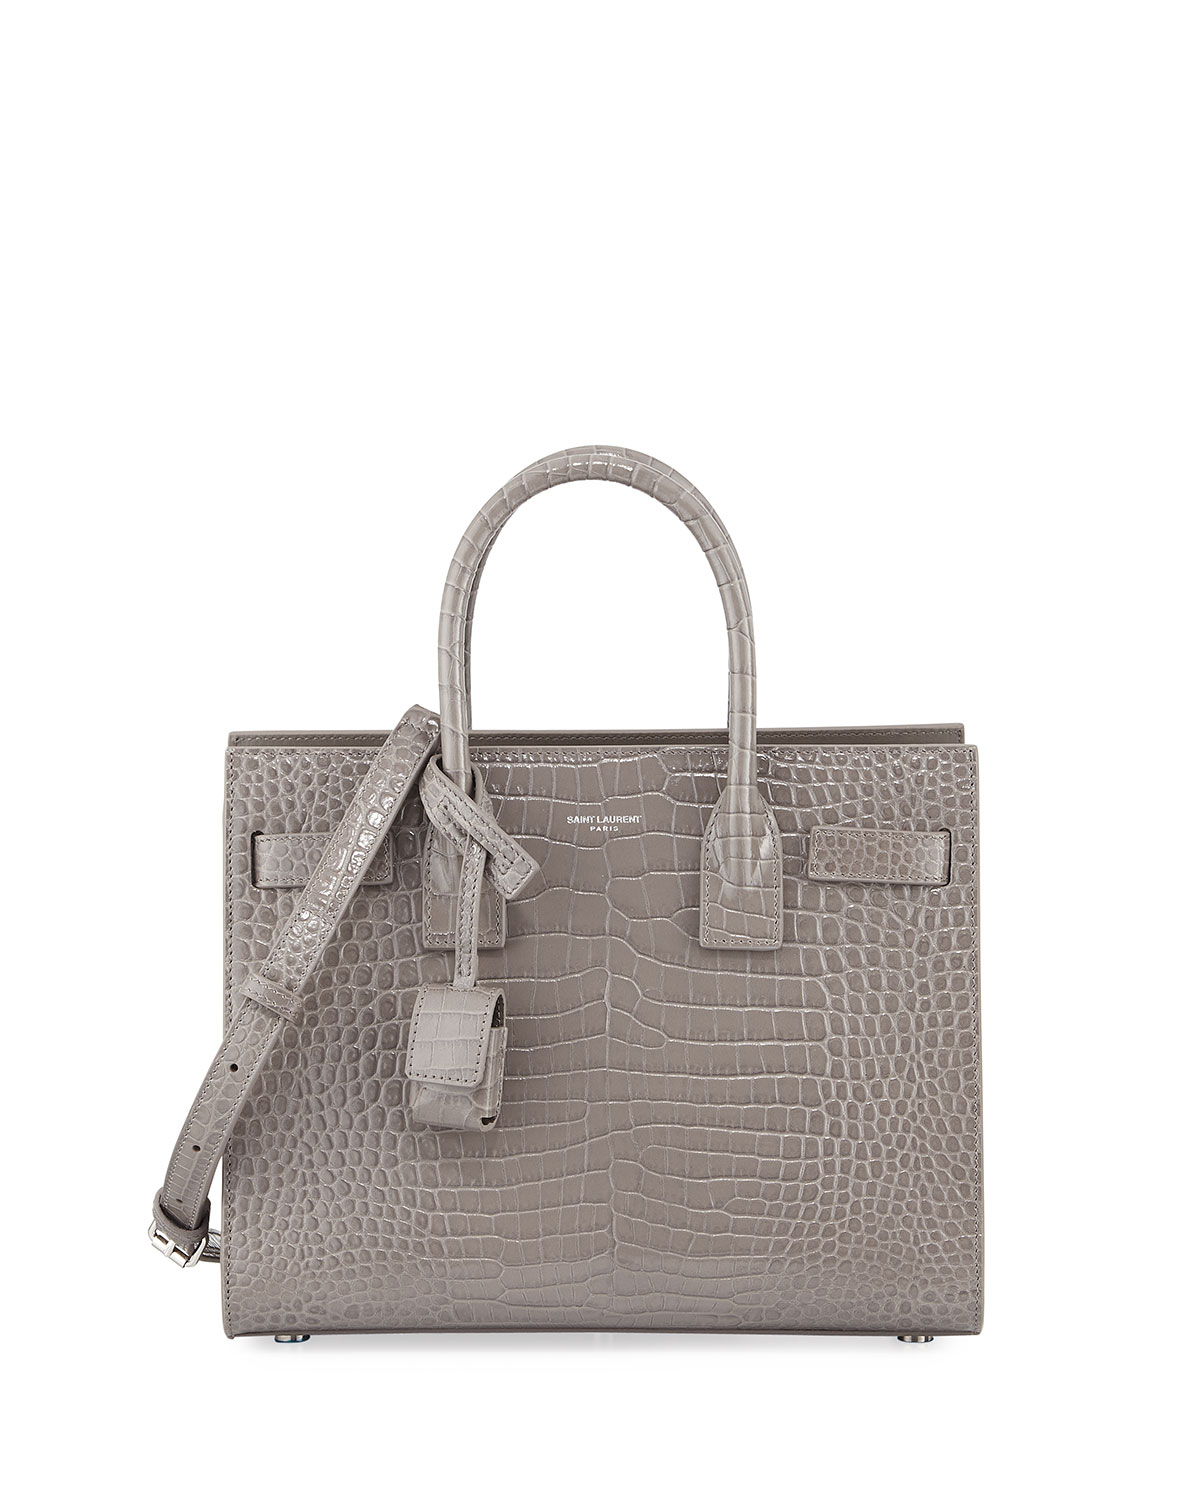 c94f8d9b3e9 Saint Laurent Sac de Jour Baby Crocodile-Embossed Leather Satchel Bag |  Neiman Marcus